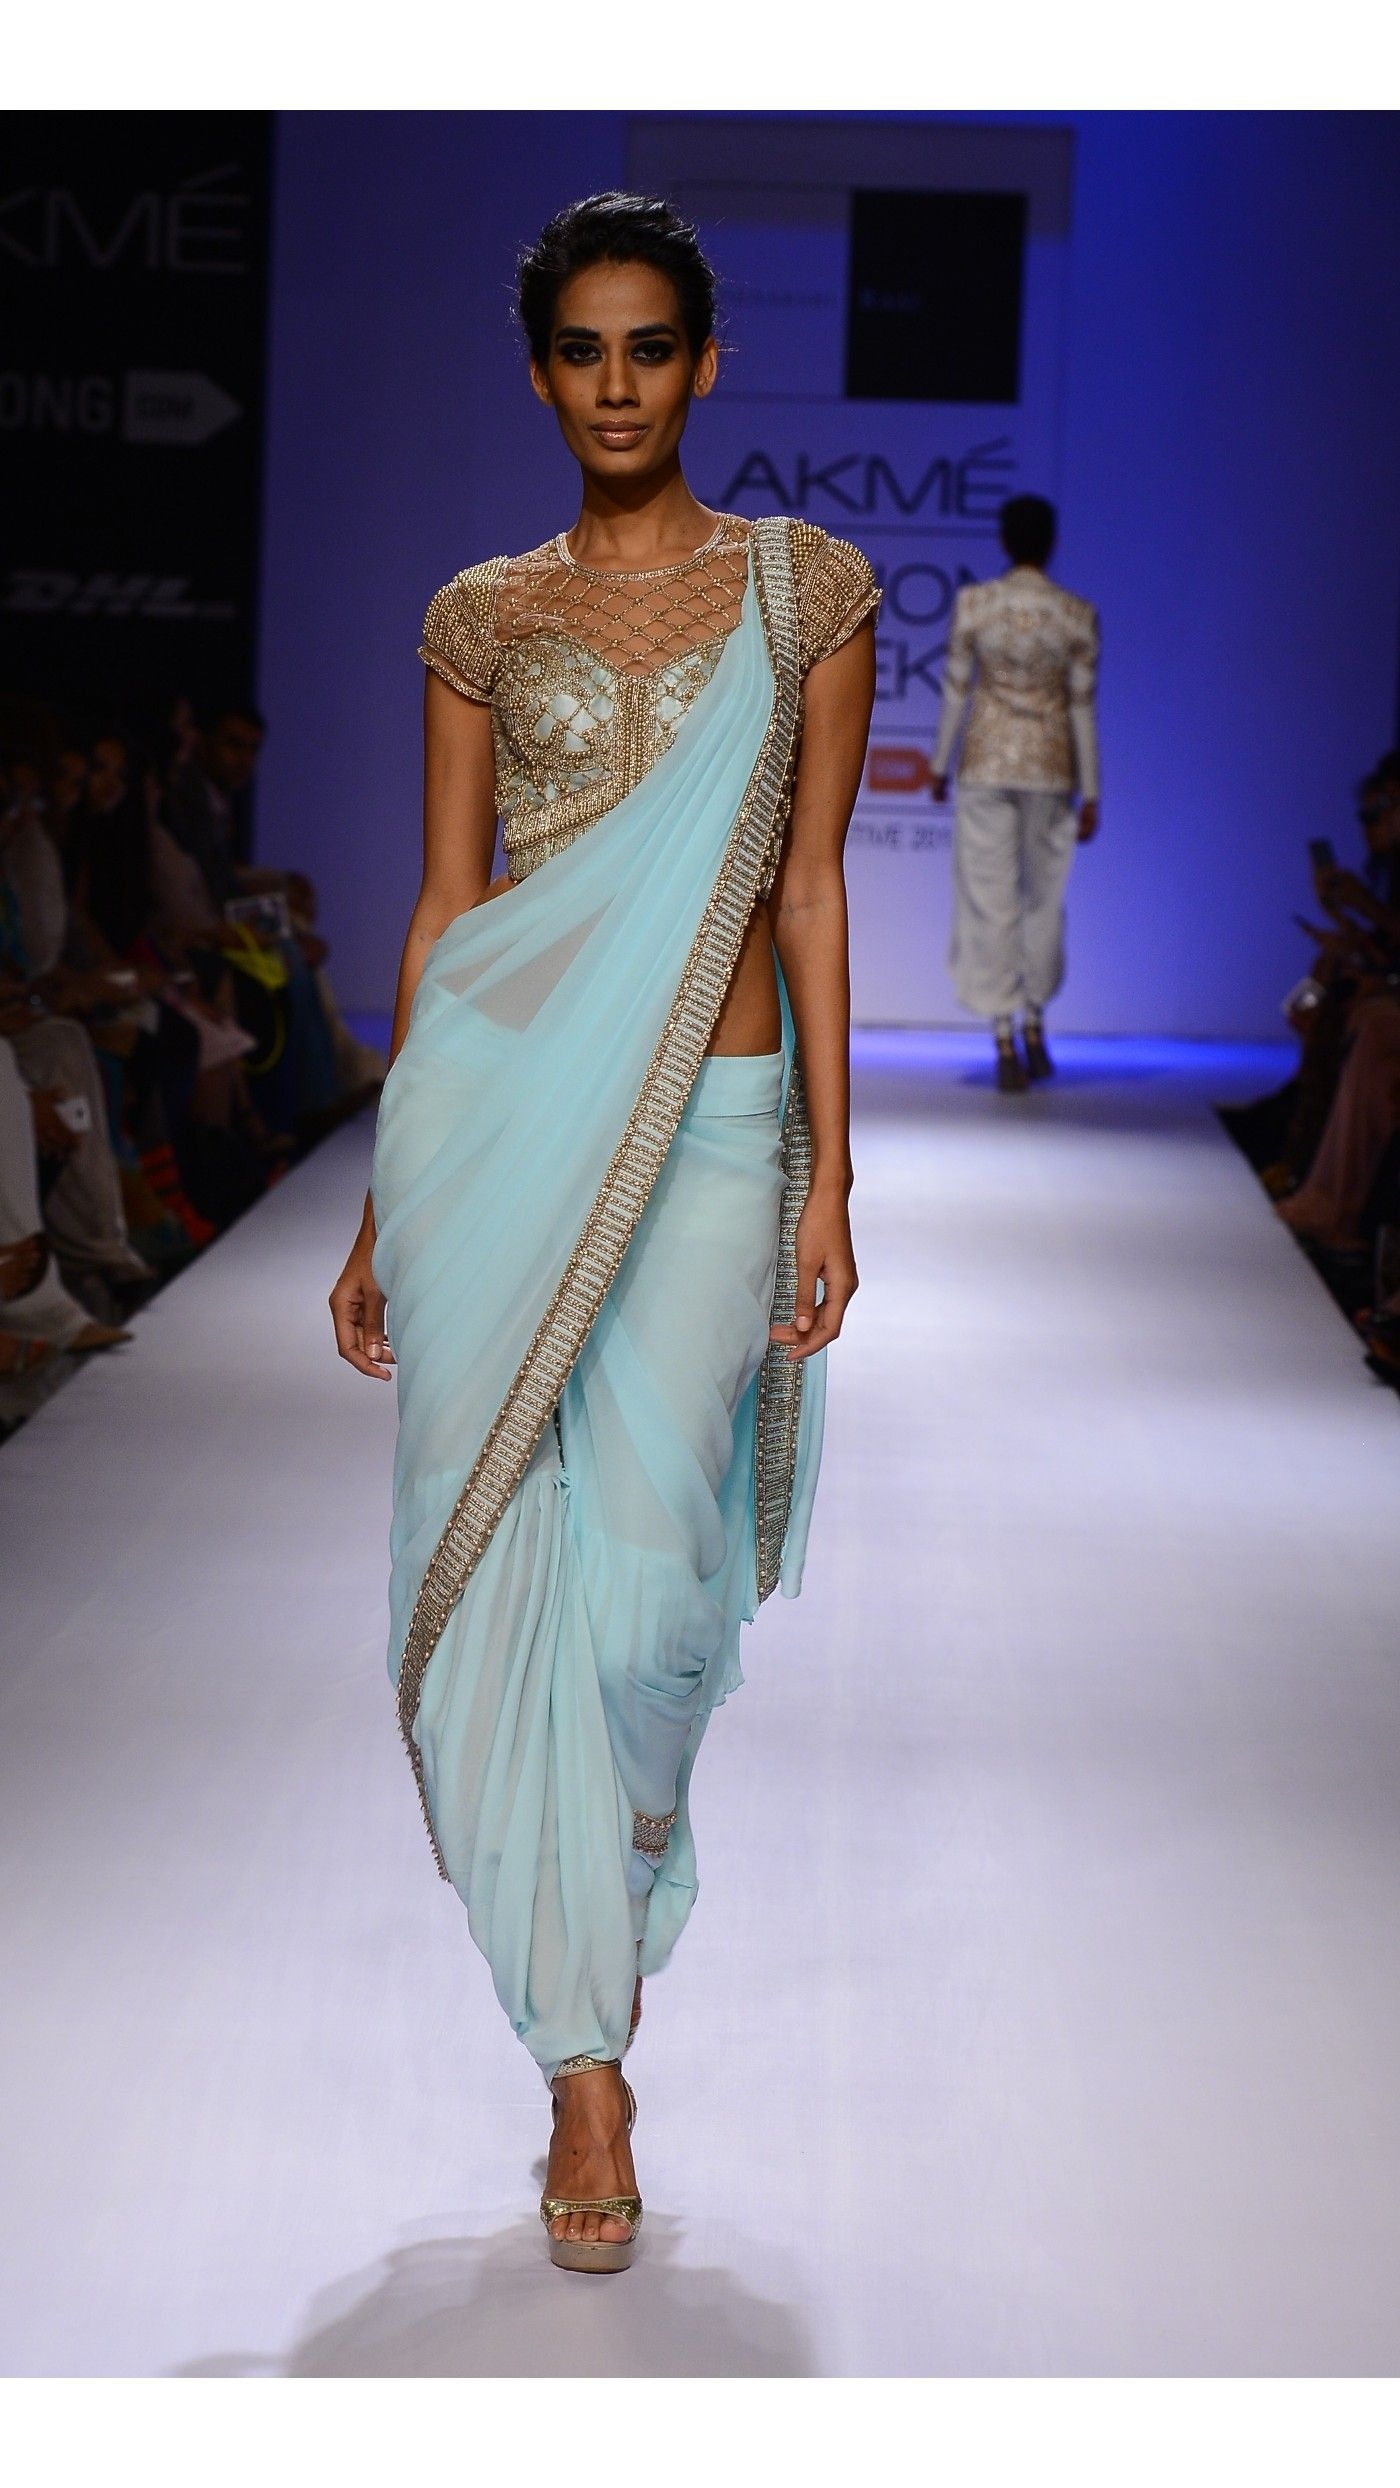 SONAAKSHI RAAJ Blue Embroidered Pant Sari-Gown.Love this concept ...